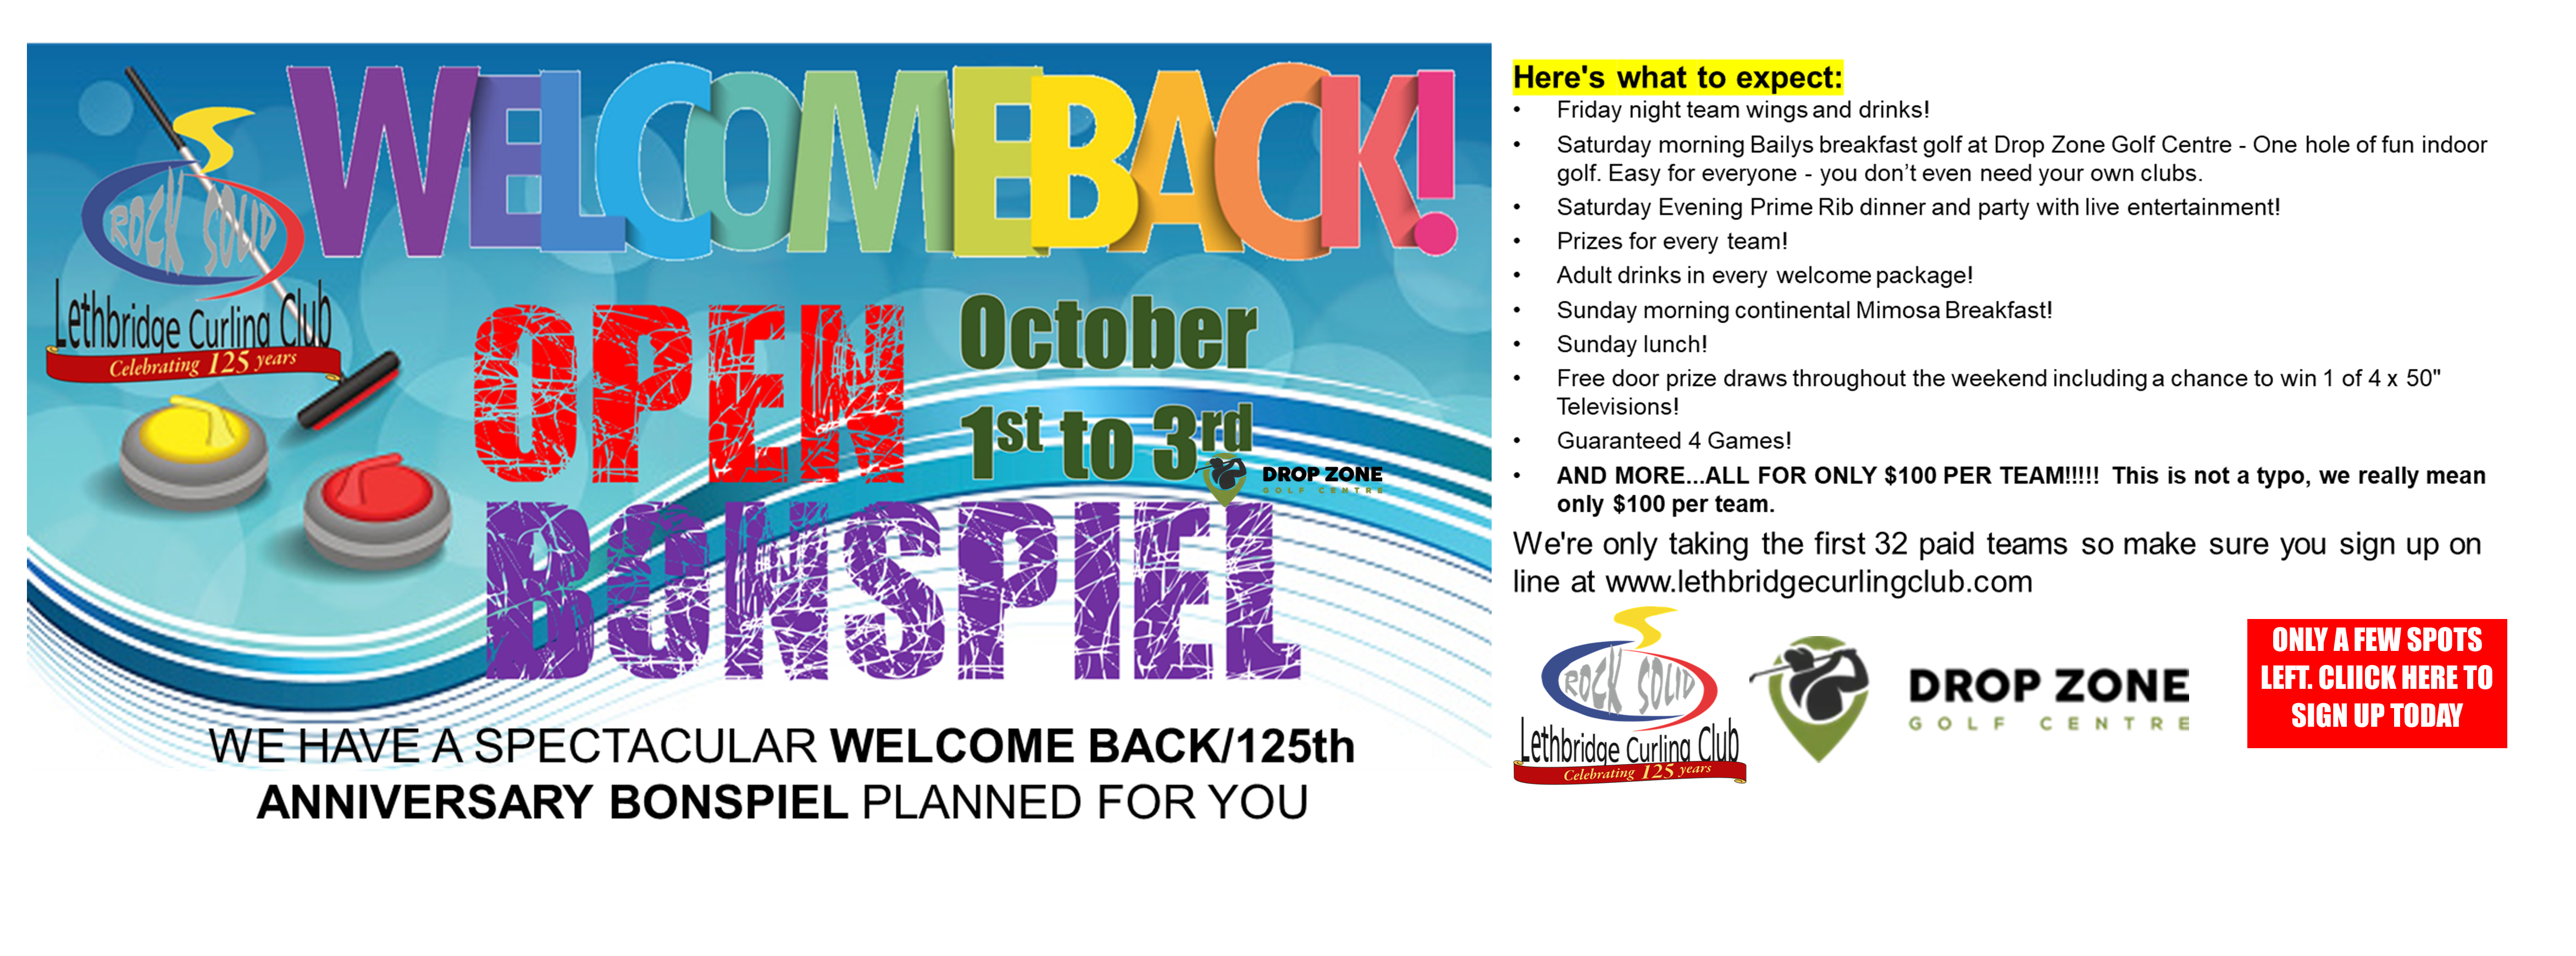 <div id=slideshow_title>WELCOME BACK - OPENING OPEN BONSPIEL</div> <br><div style='text-align: left; font-size: 18px;'>Get back into the swing of things!</div>